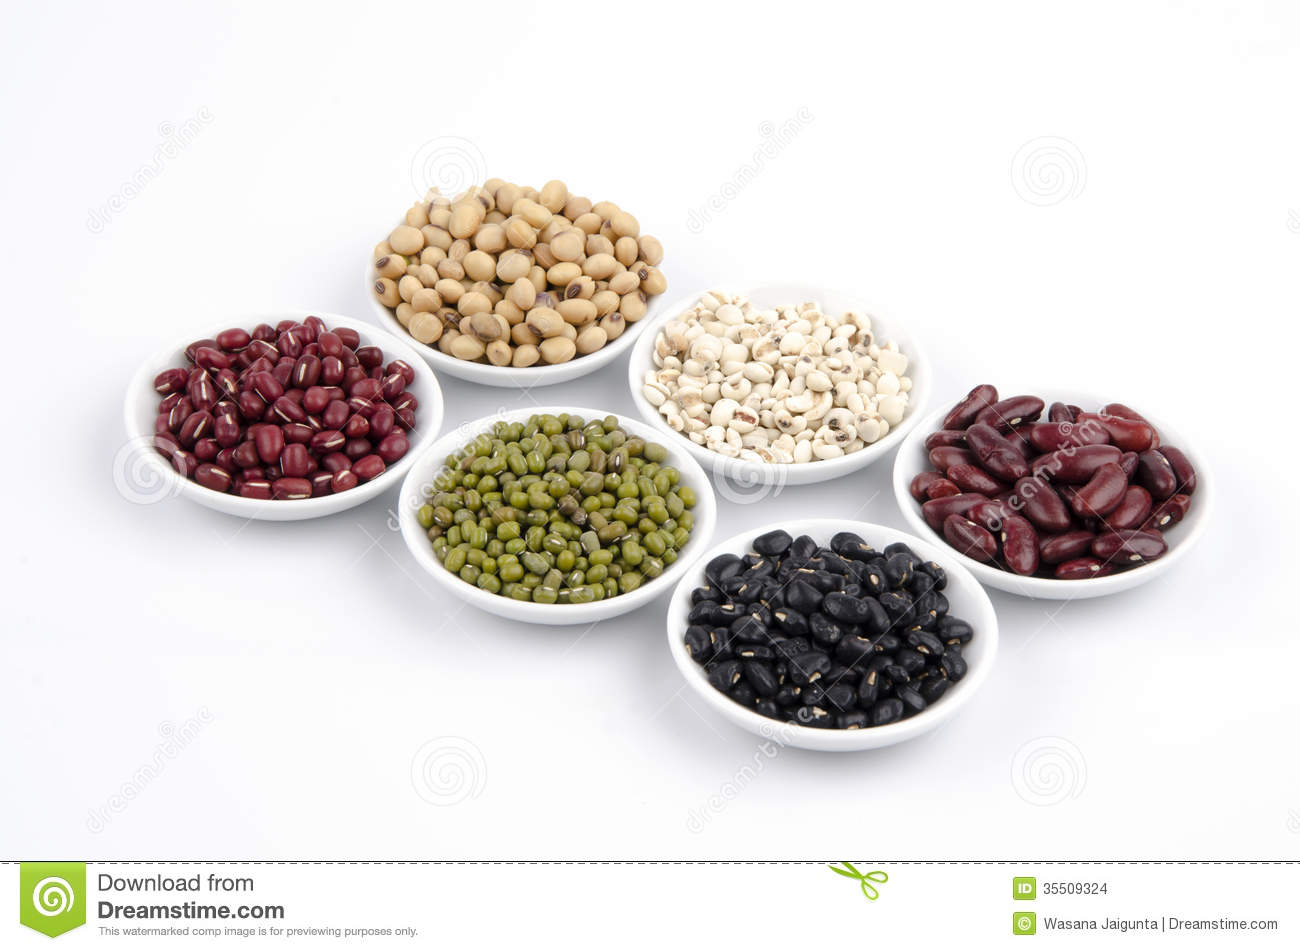 Jobs Tears, Soy Beans, Red Beans, Black Beans, And Green Beans ...